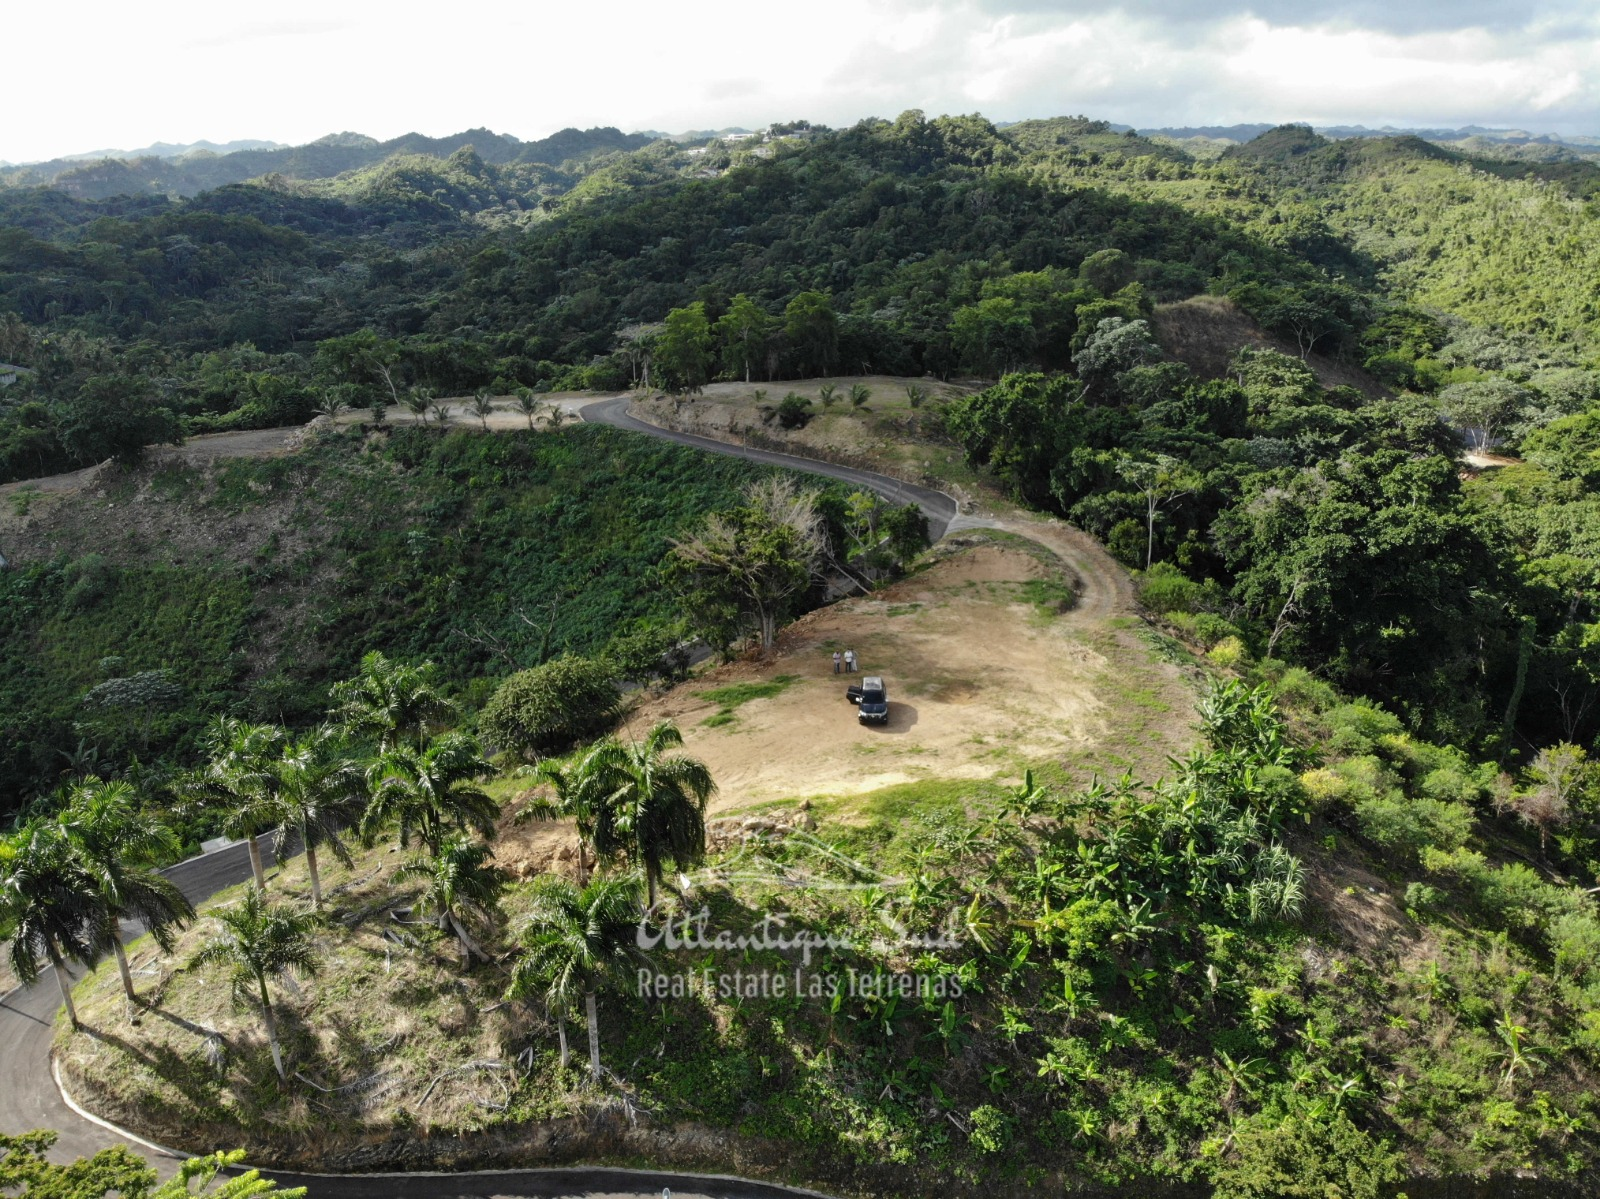 Land Lots for sale las terrenas samana8.jpeg